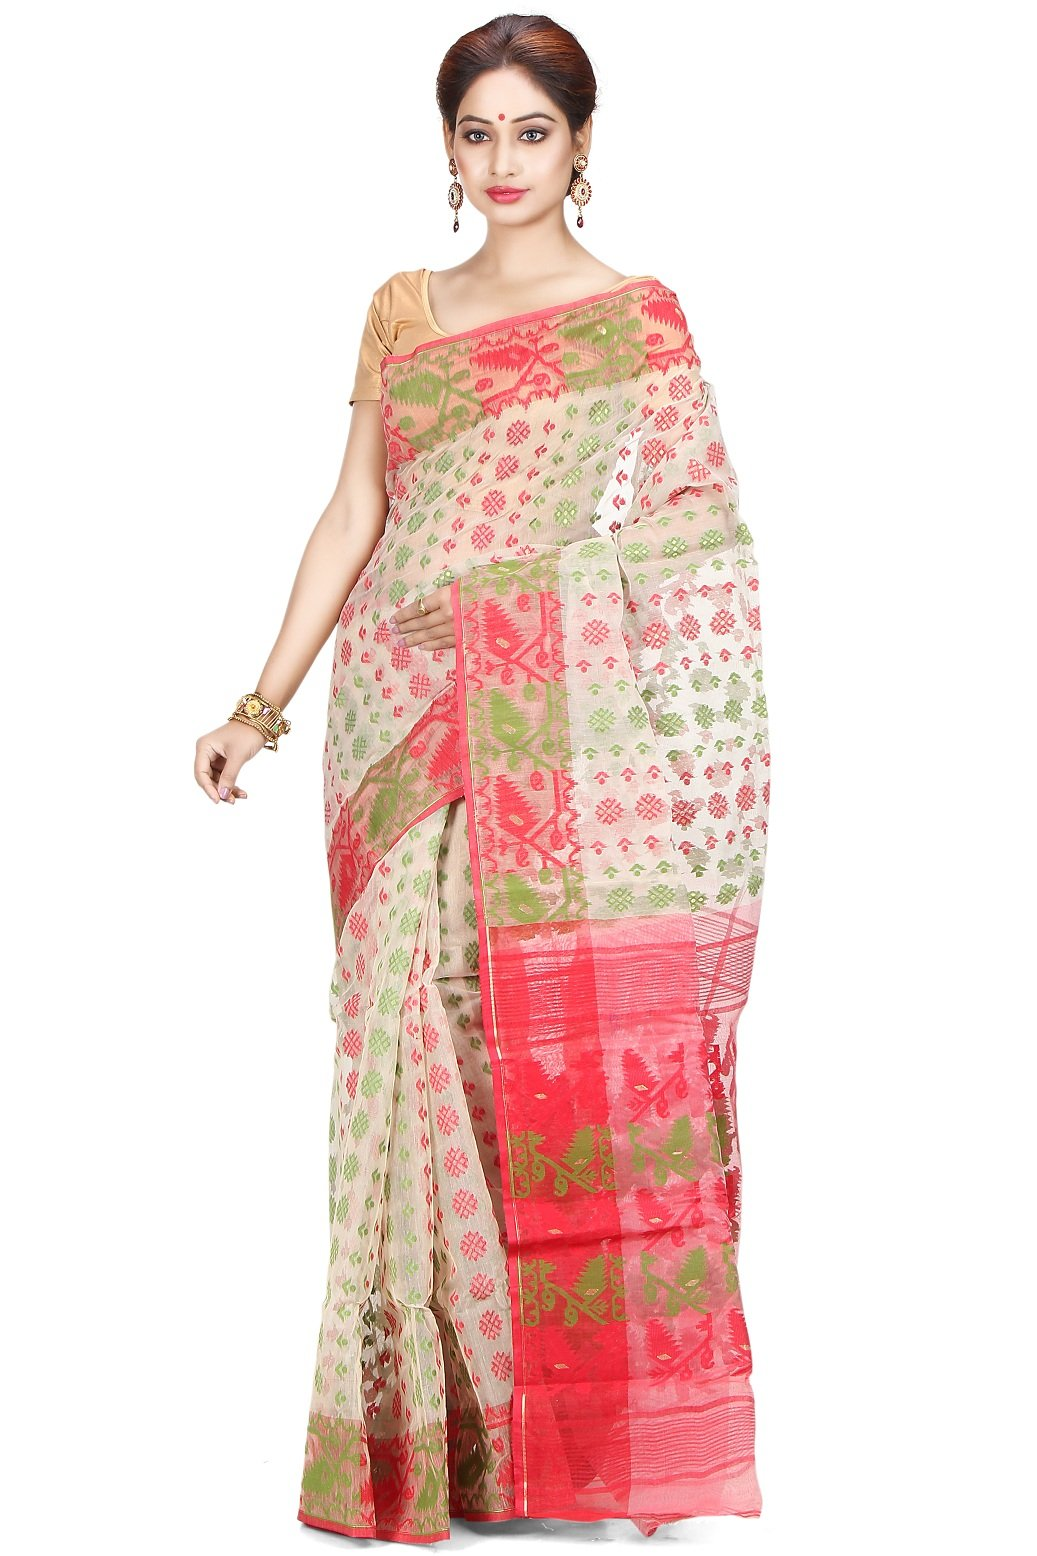 Indian Ethnic Silk Cotton Jamdani Red Handloom Saree